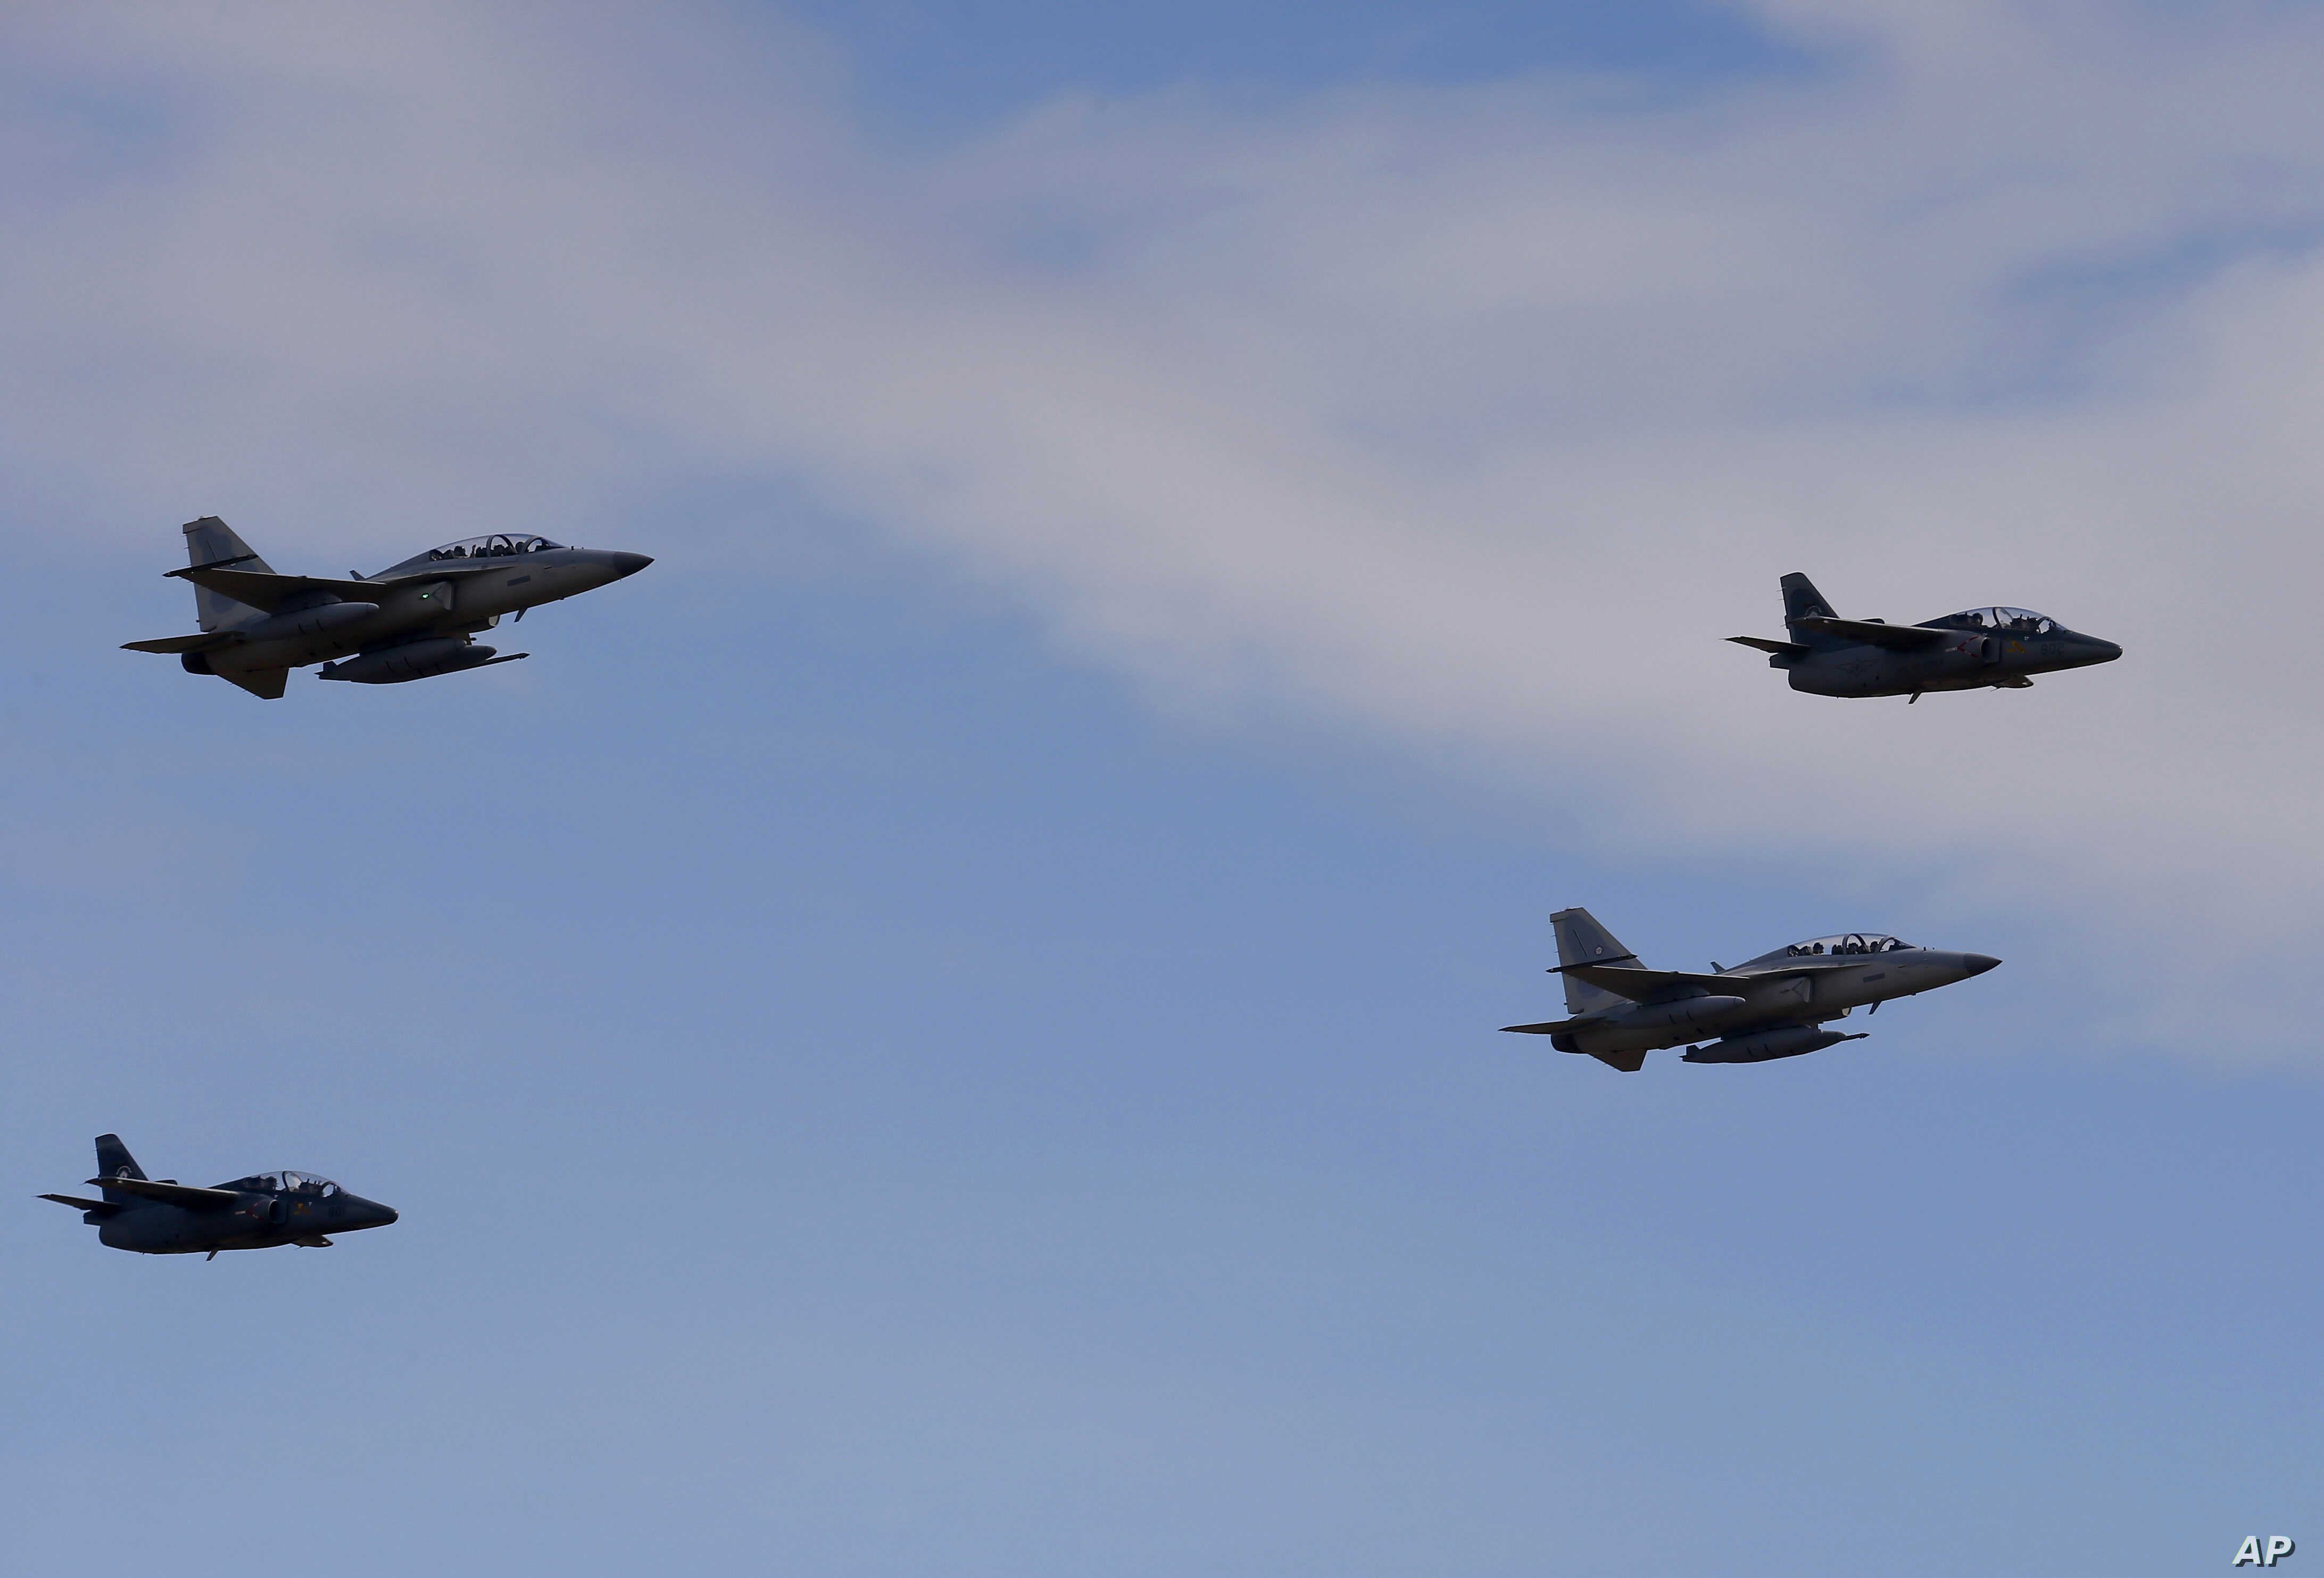 Newly-acquired FA-50PH fighter jets, top left and bottom right, escorted by Philippine Air Force S-211 jets, fly upon arrival in Philippine air space from South Korea, Nov. 28, 2015.